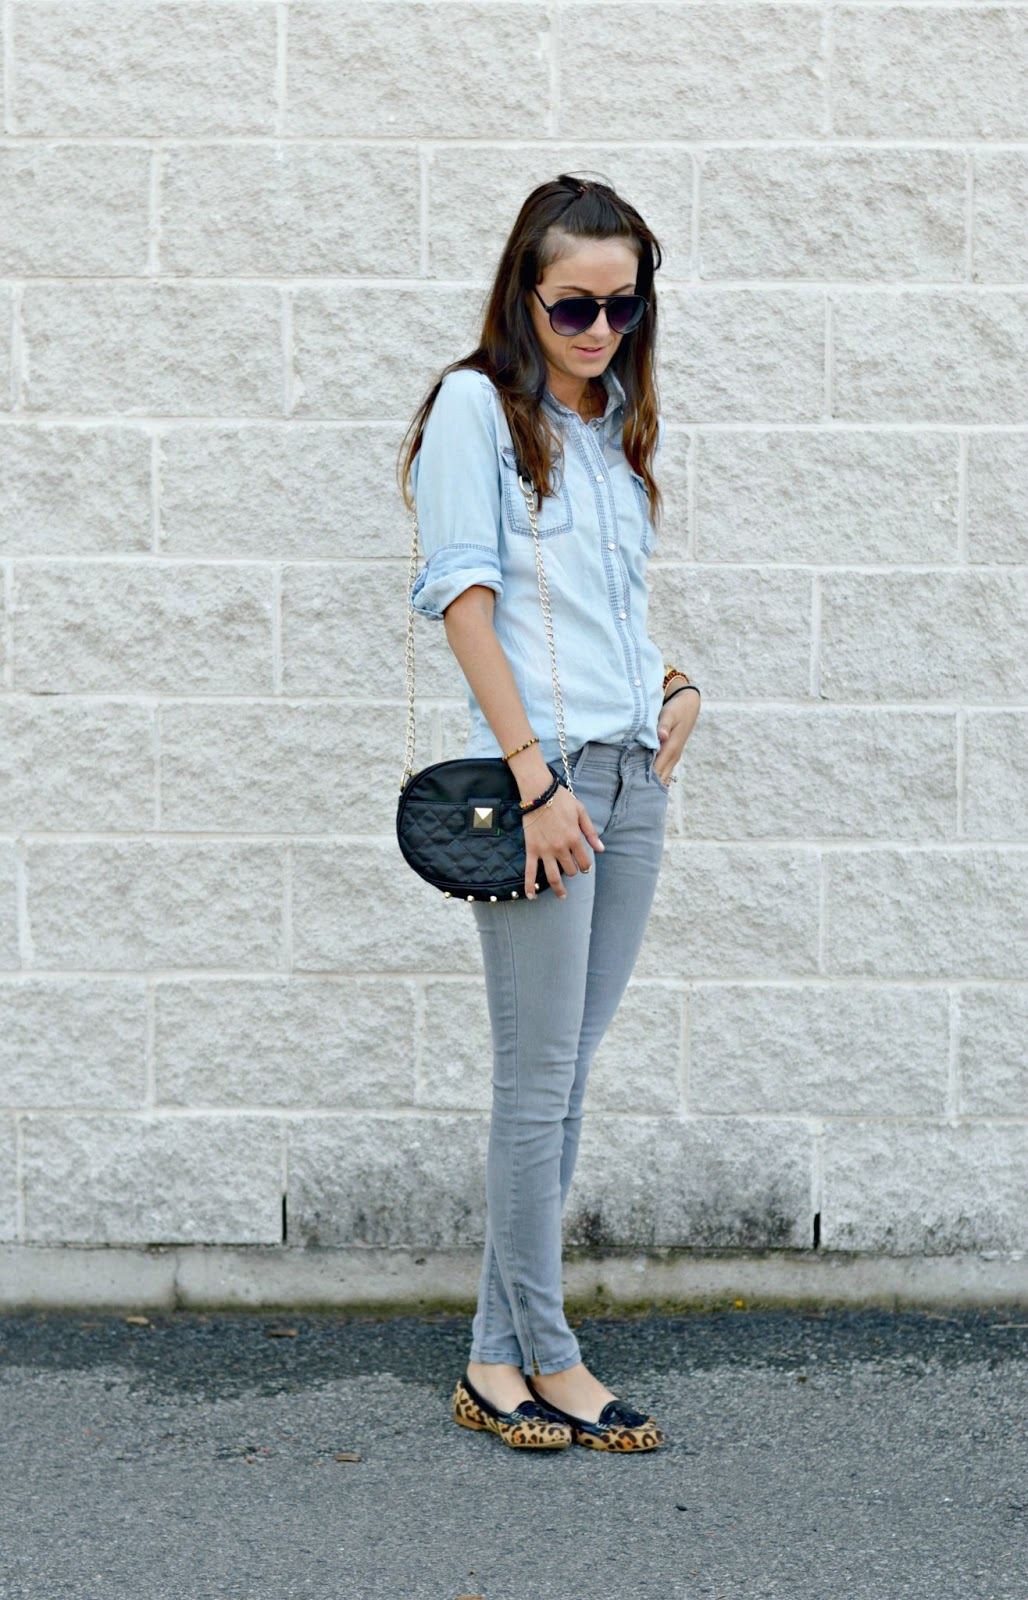 bf01c2112e0988 16 Brilliant Outfits You Can Wear With Grey Jeans - Outfit Ideas HQ